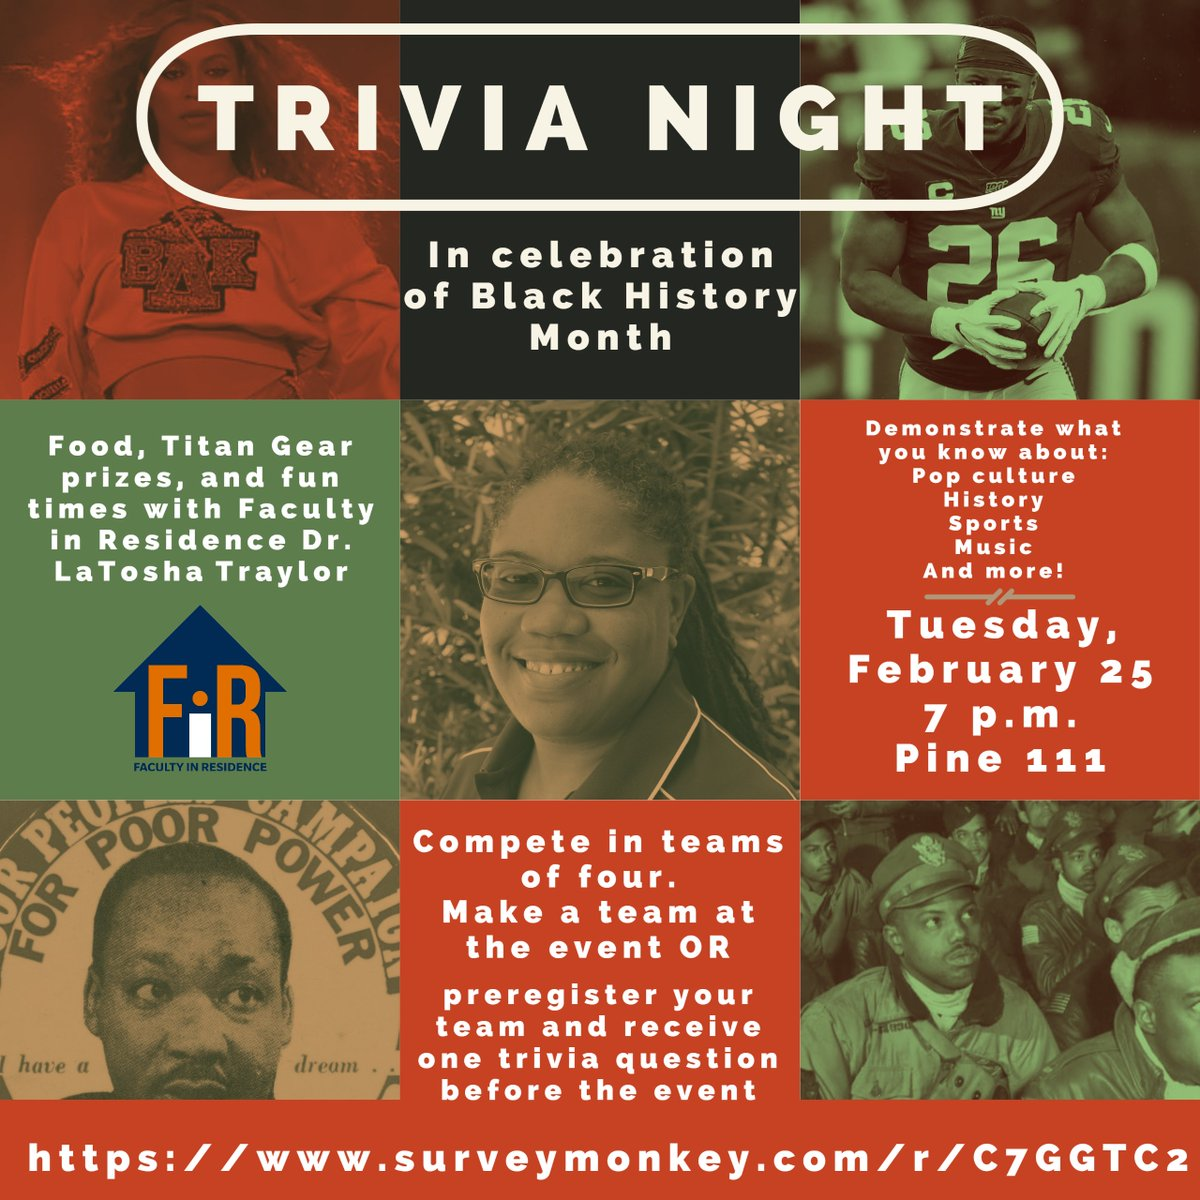 Next week is TRIVIA NIGHT with Faculty in Residence Dr. LaTosha Traylor! Come join us to celebrate Black History Month.  Create your team of four when you get to the event OR preregister your team to get one trivia question ahead of time at http://bit.ly/2uKheuL  pic.twitter.com/5gaW0J26NN